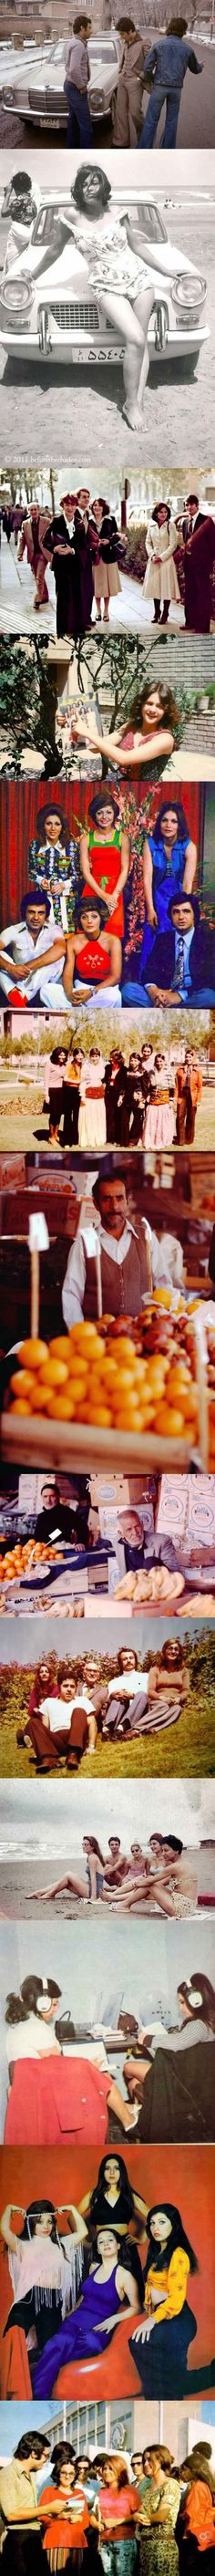 Beautiful vintage photos that capture Iran in the 60s and 70s.